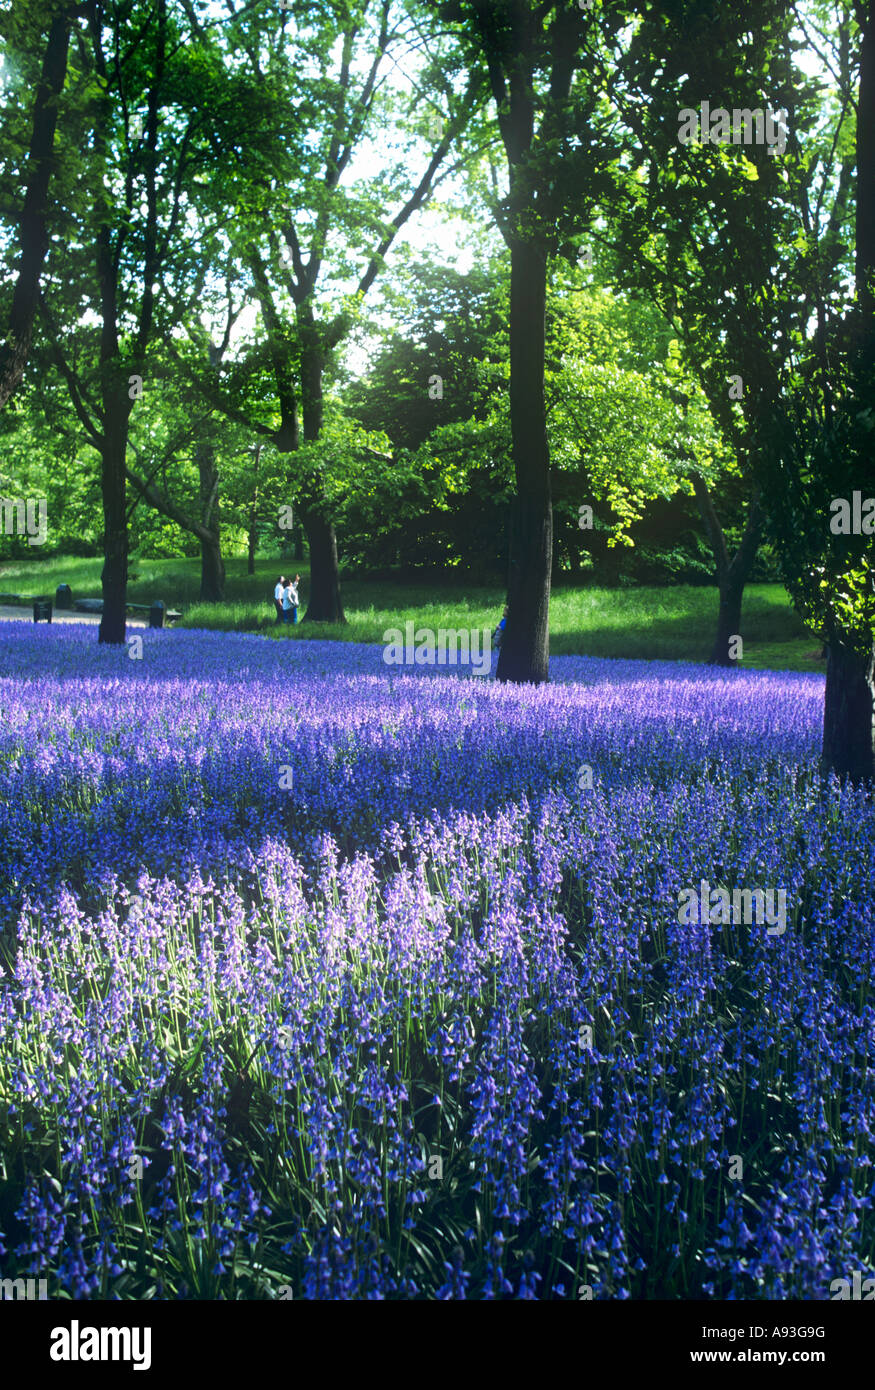 Bluebells In Brooklyn Botanic Gardens Prospect Park Brooklyn New York Stock Photo Royalty Free